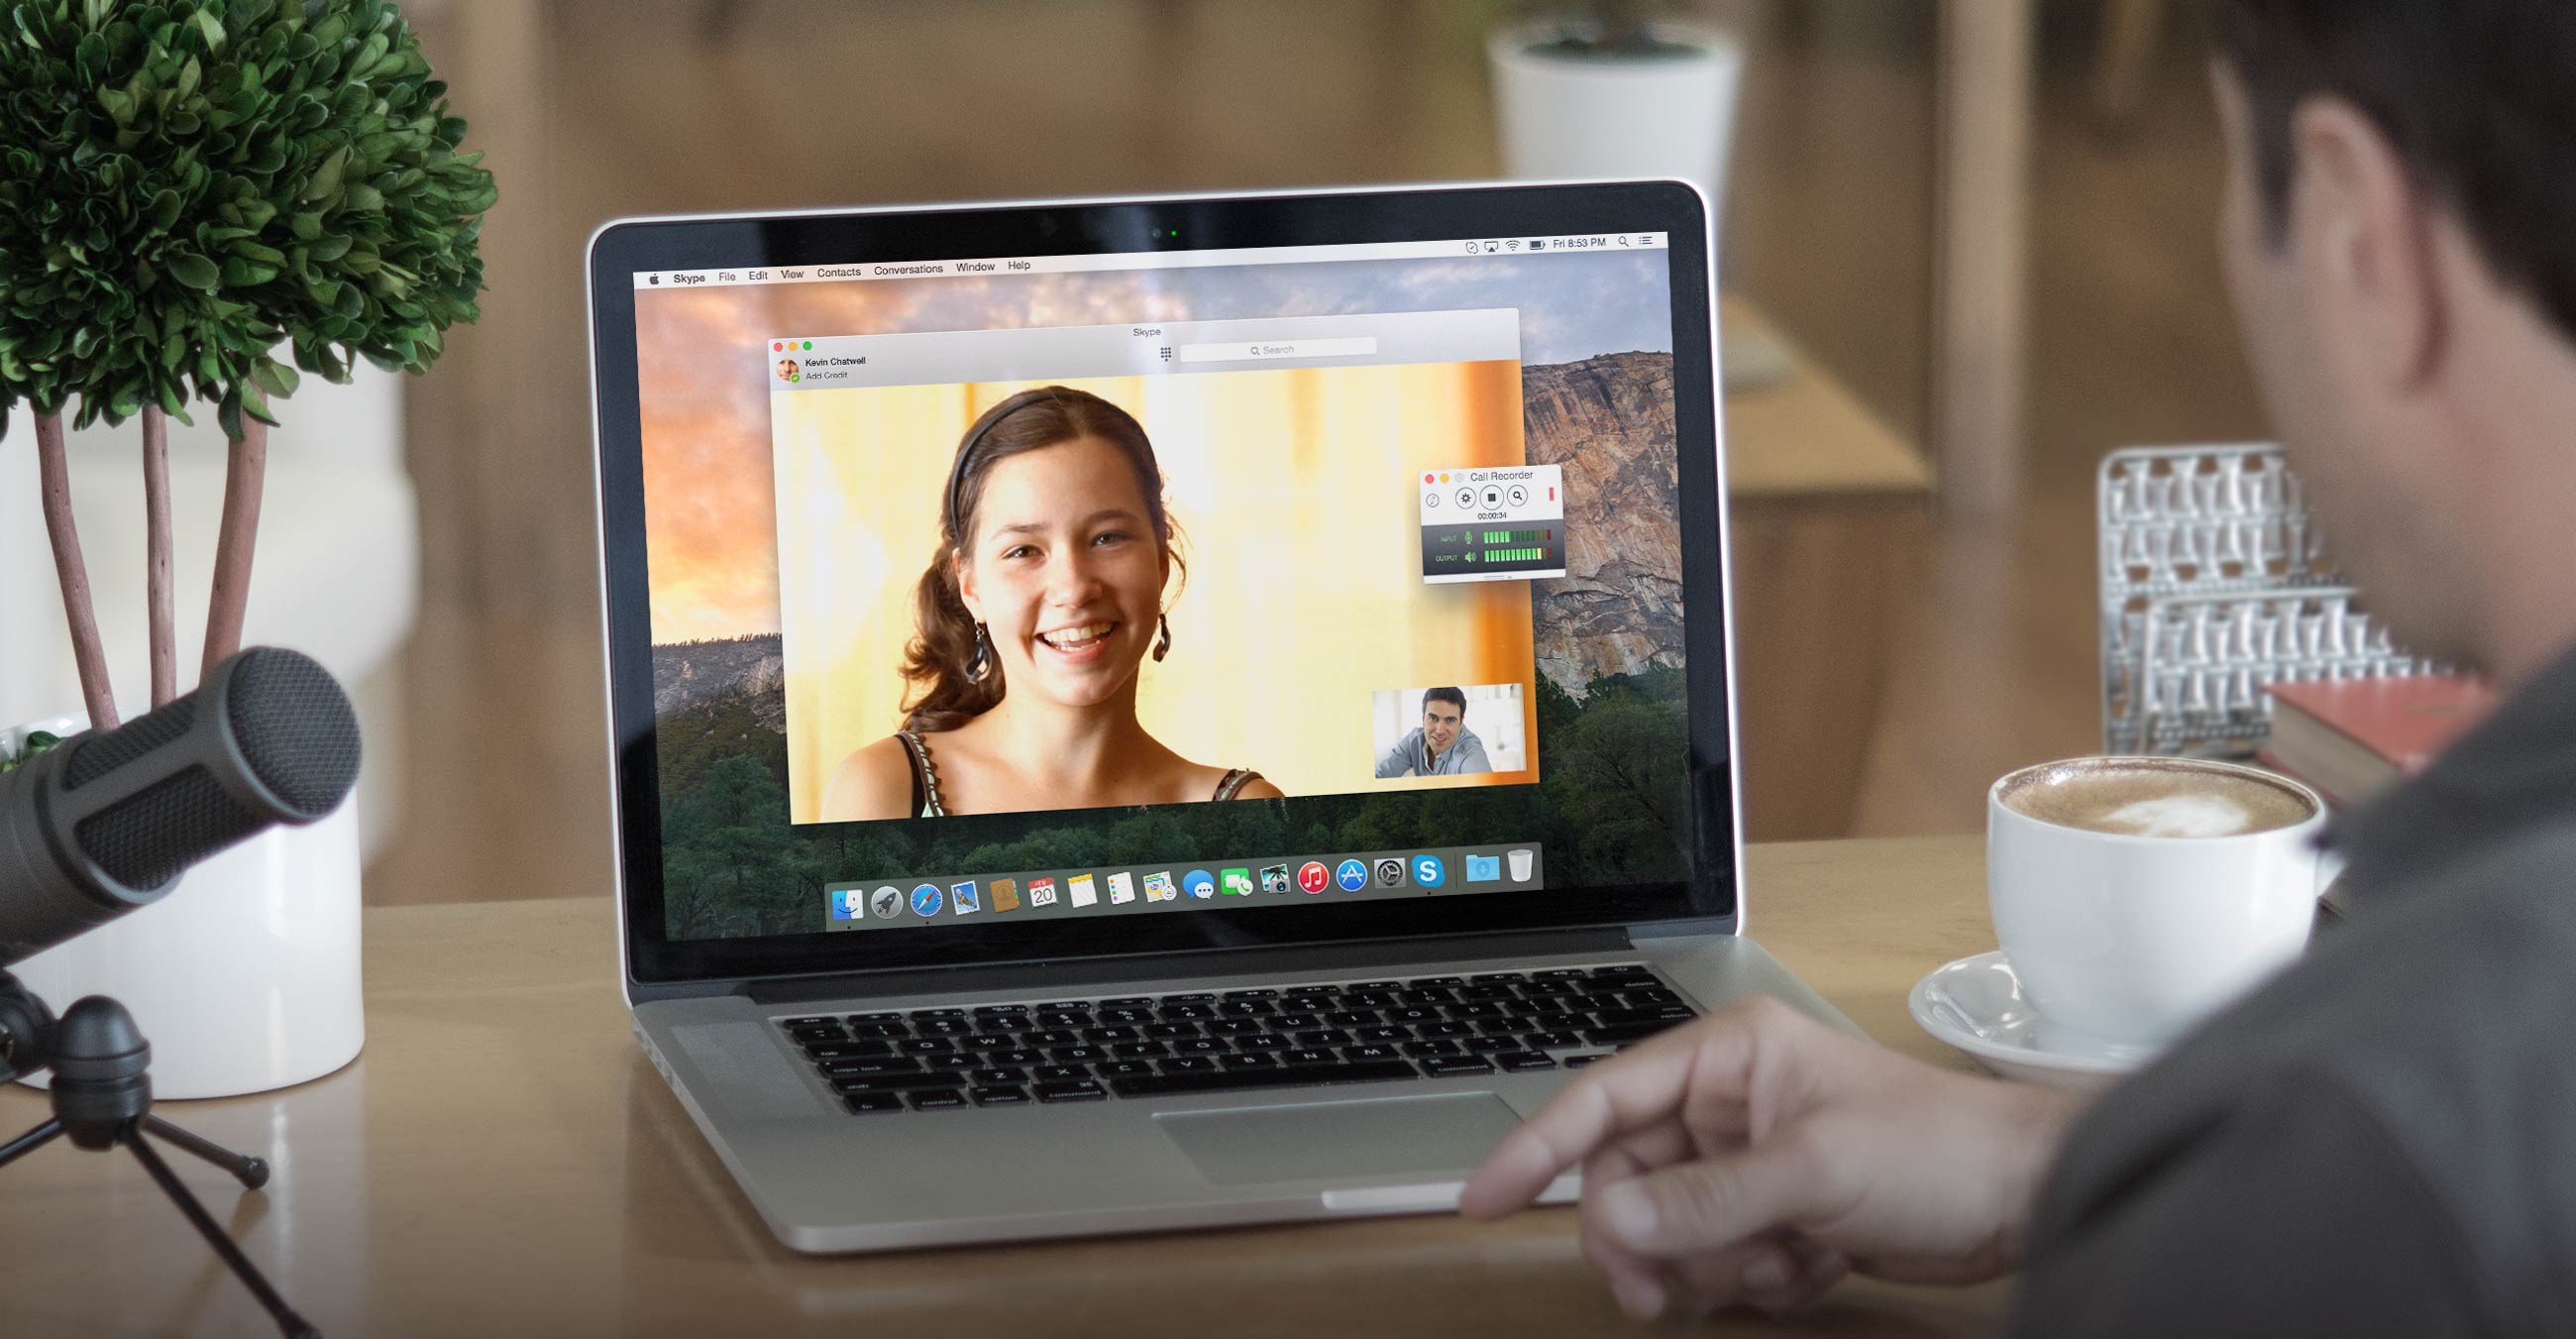 How to Record a Podcast Interview on Skype